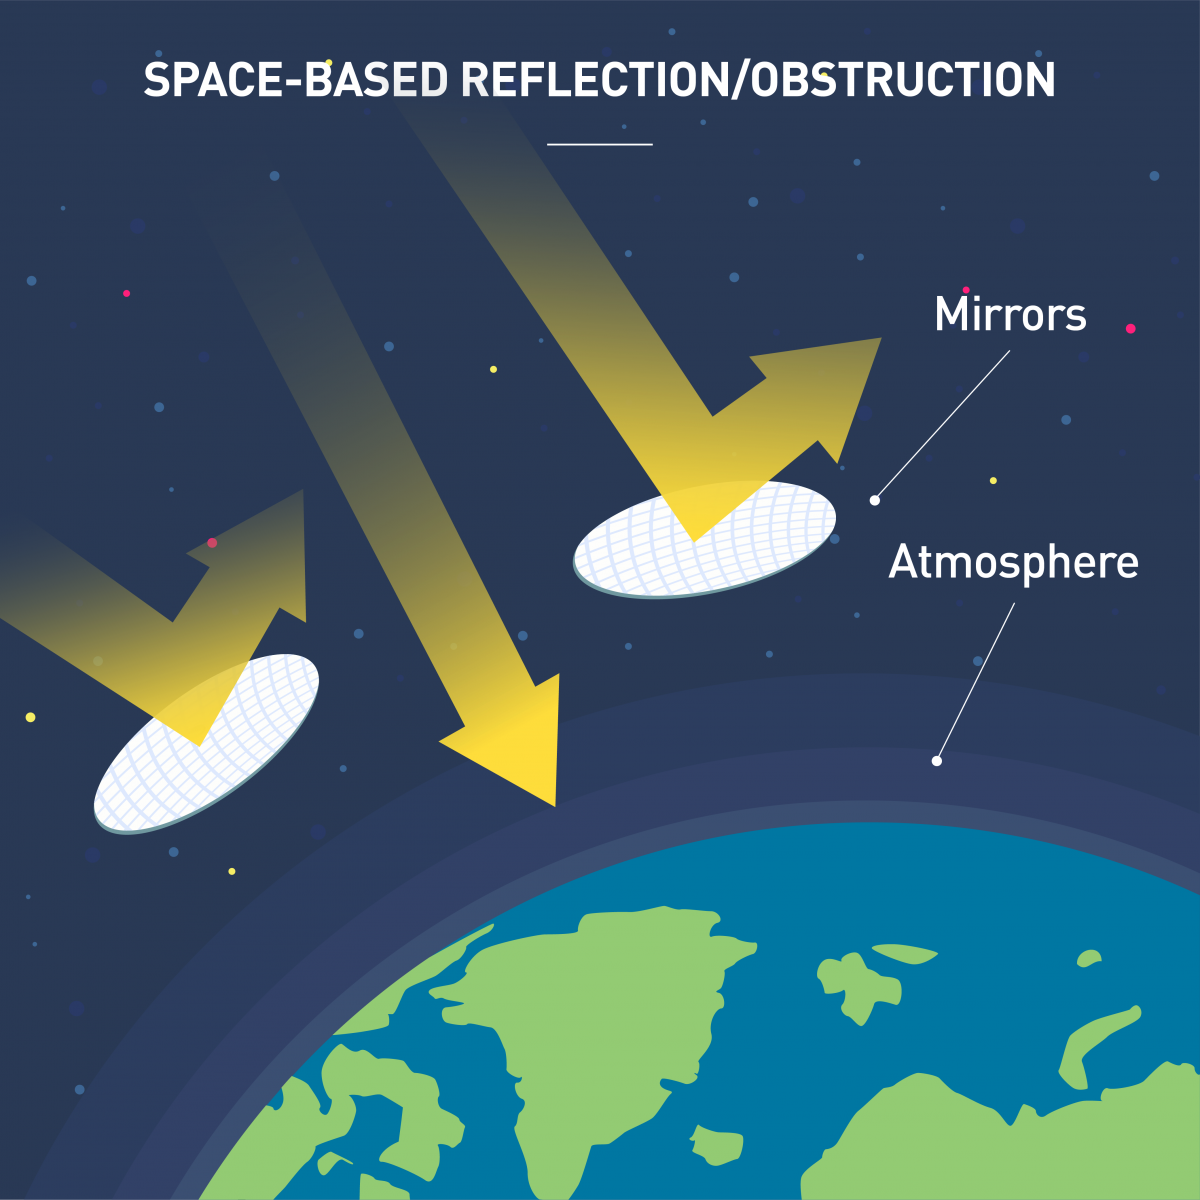 One of the more costly and difficult proposed engineering solutions to address global warming is the creation of massive mirrors that float in space above the Earth and reflect sunlight back into space.